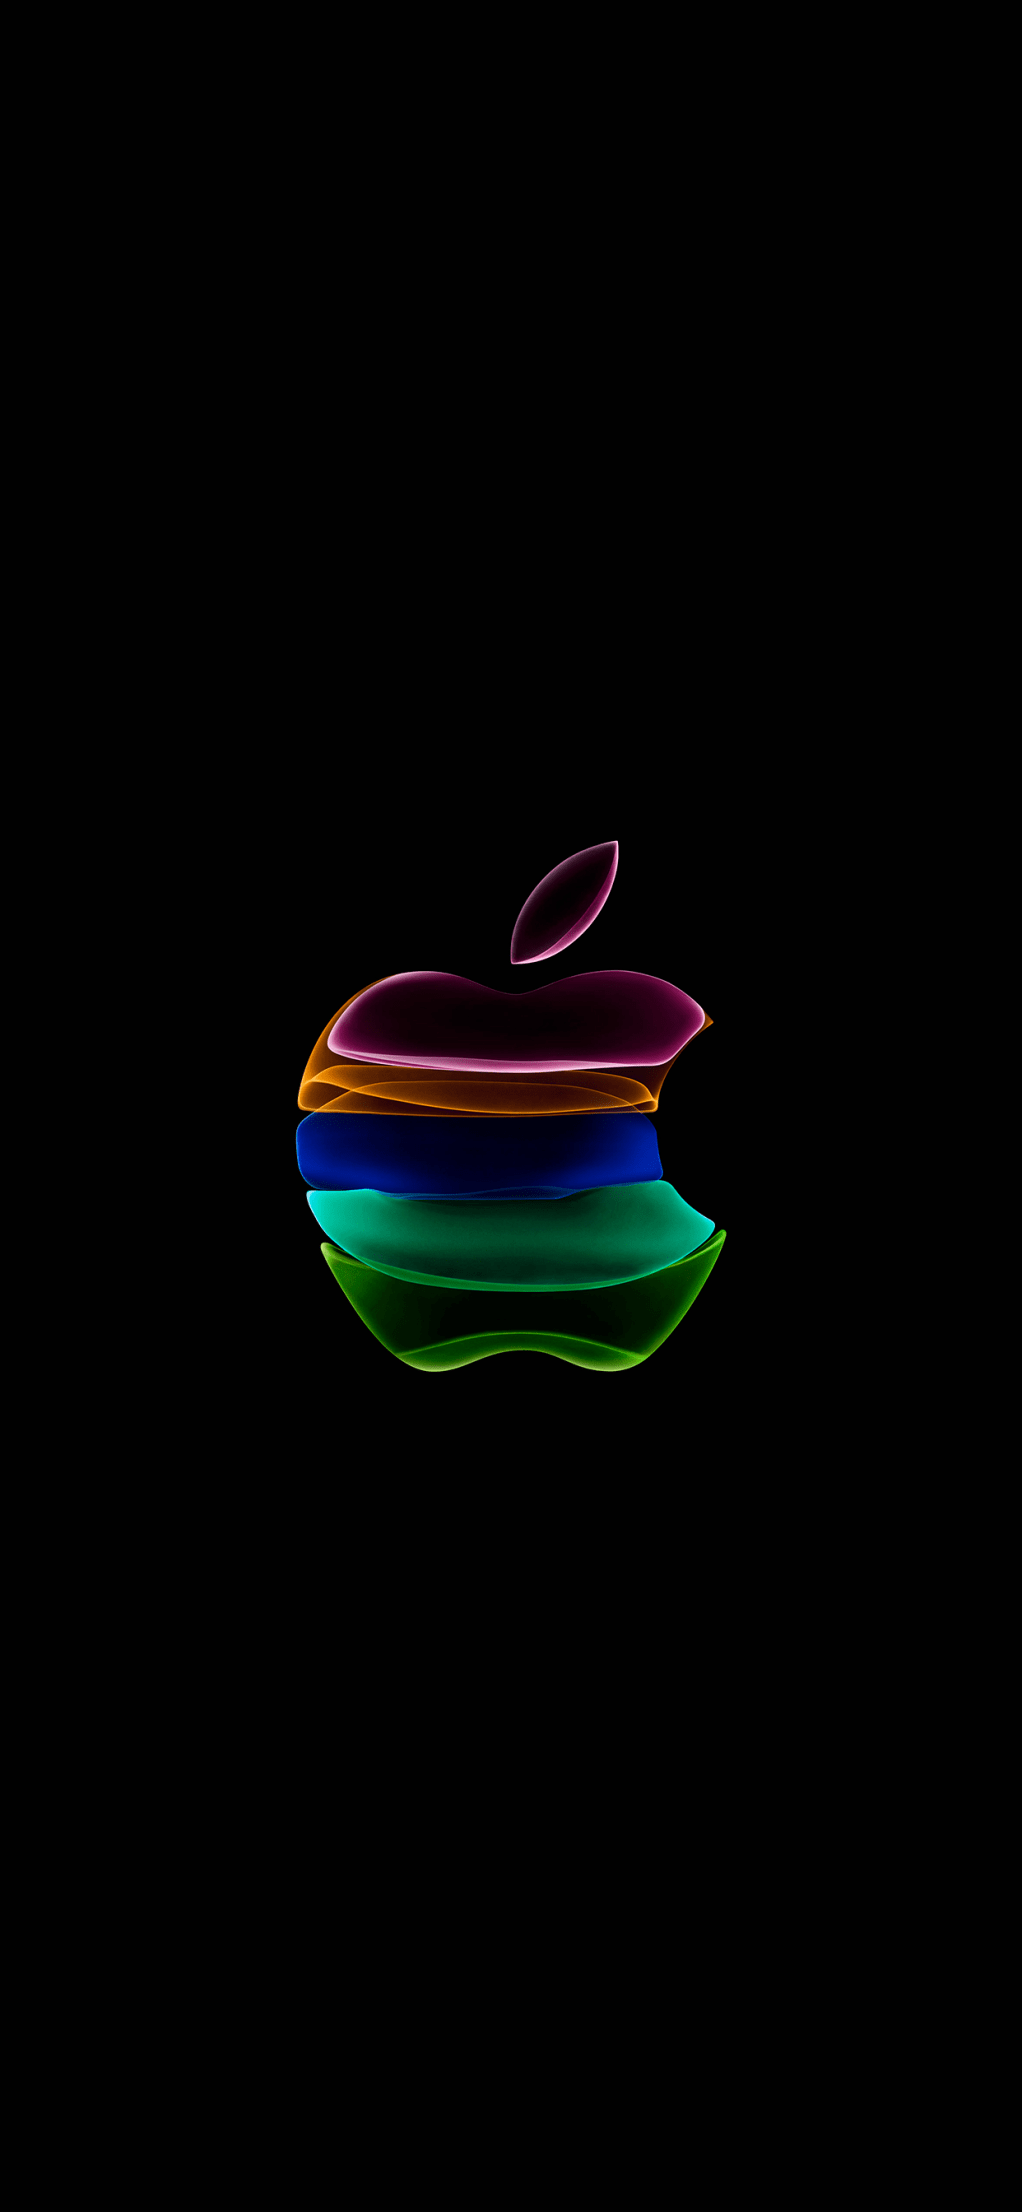 Apple Event Inspired Wallpapers For Iphone Ipad Apple Logo Wallpaper Iphone Iphone Homescreen Wallpaper Iphone Wallpaper